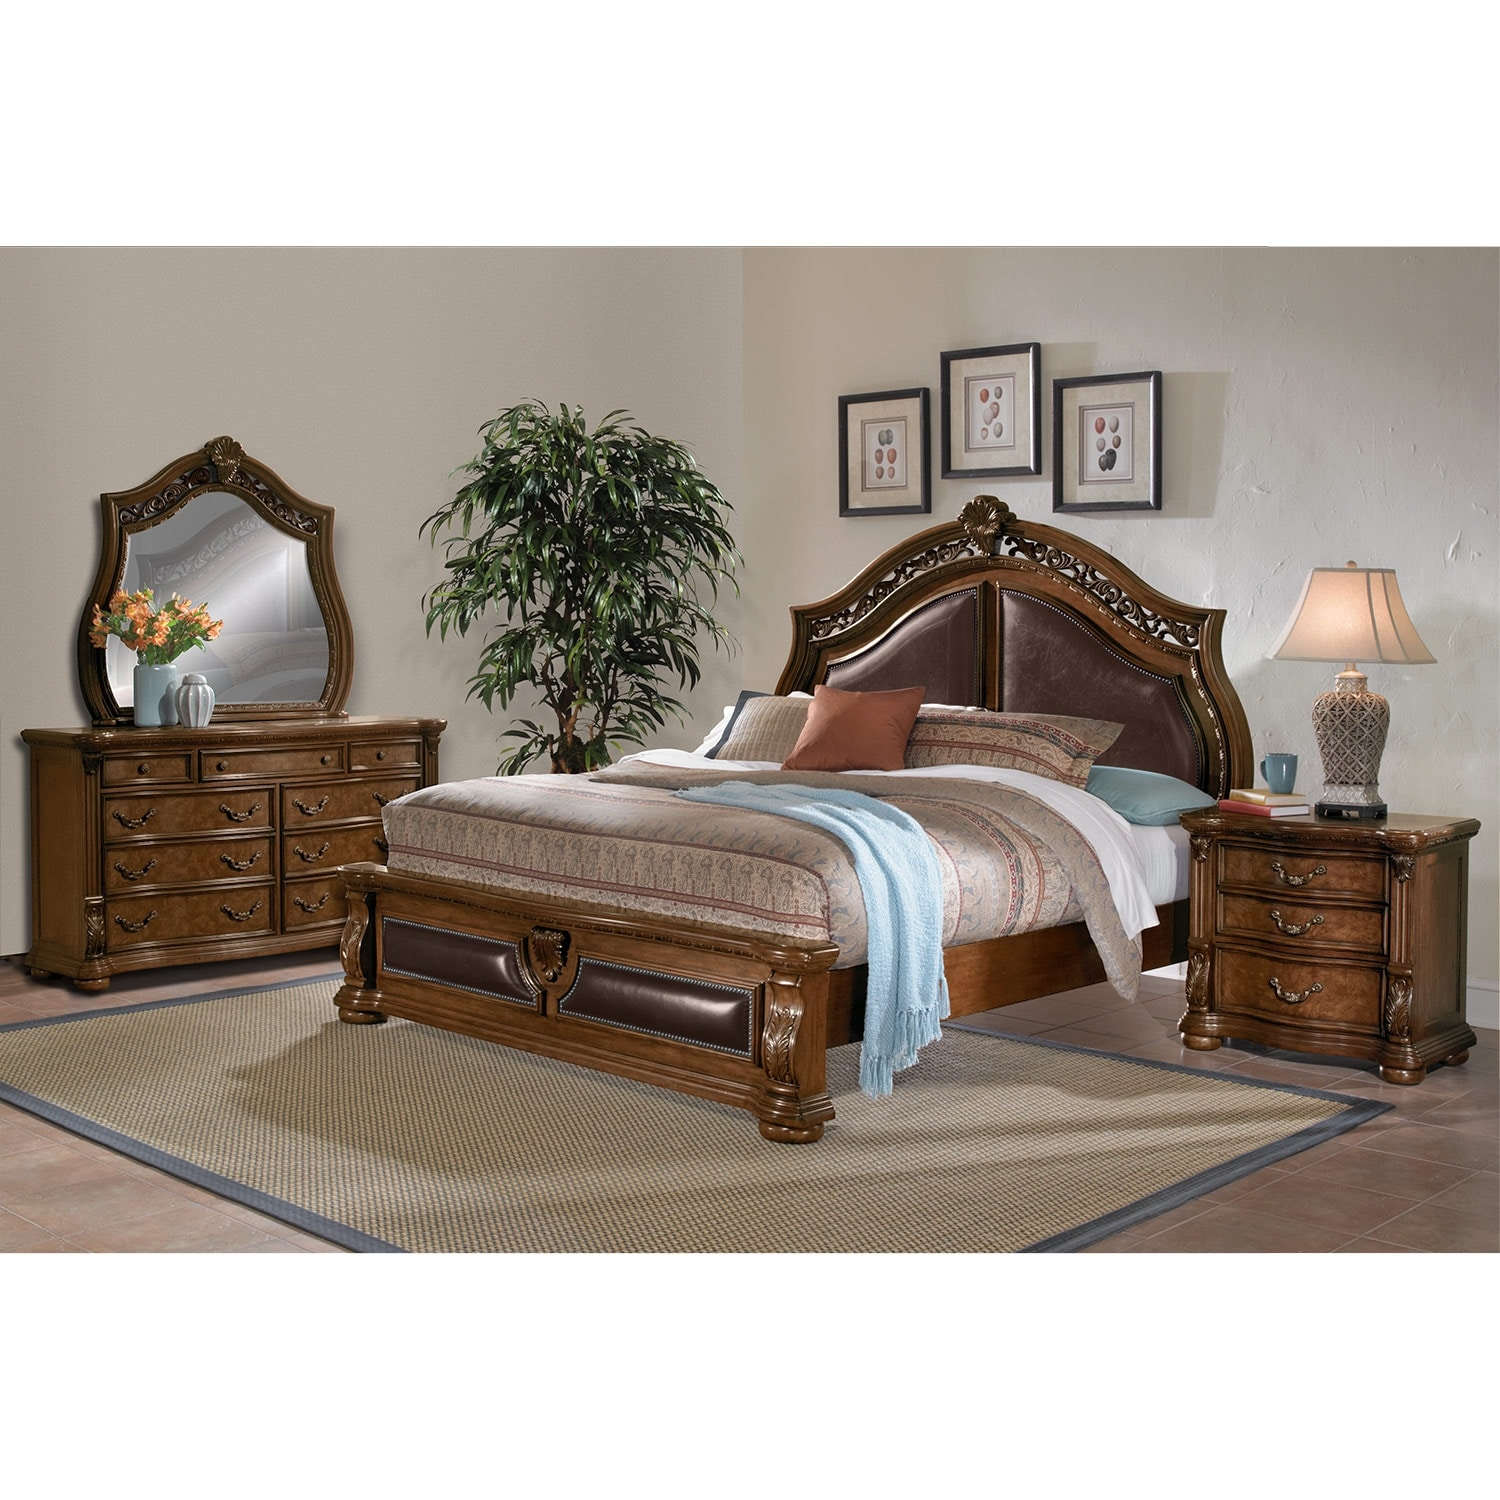 Morocco 6-Piece King Upholstered Bedroom Set - Pecan | Value City ...